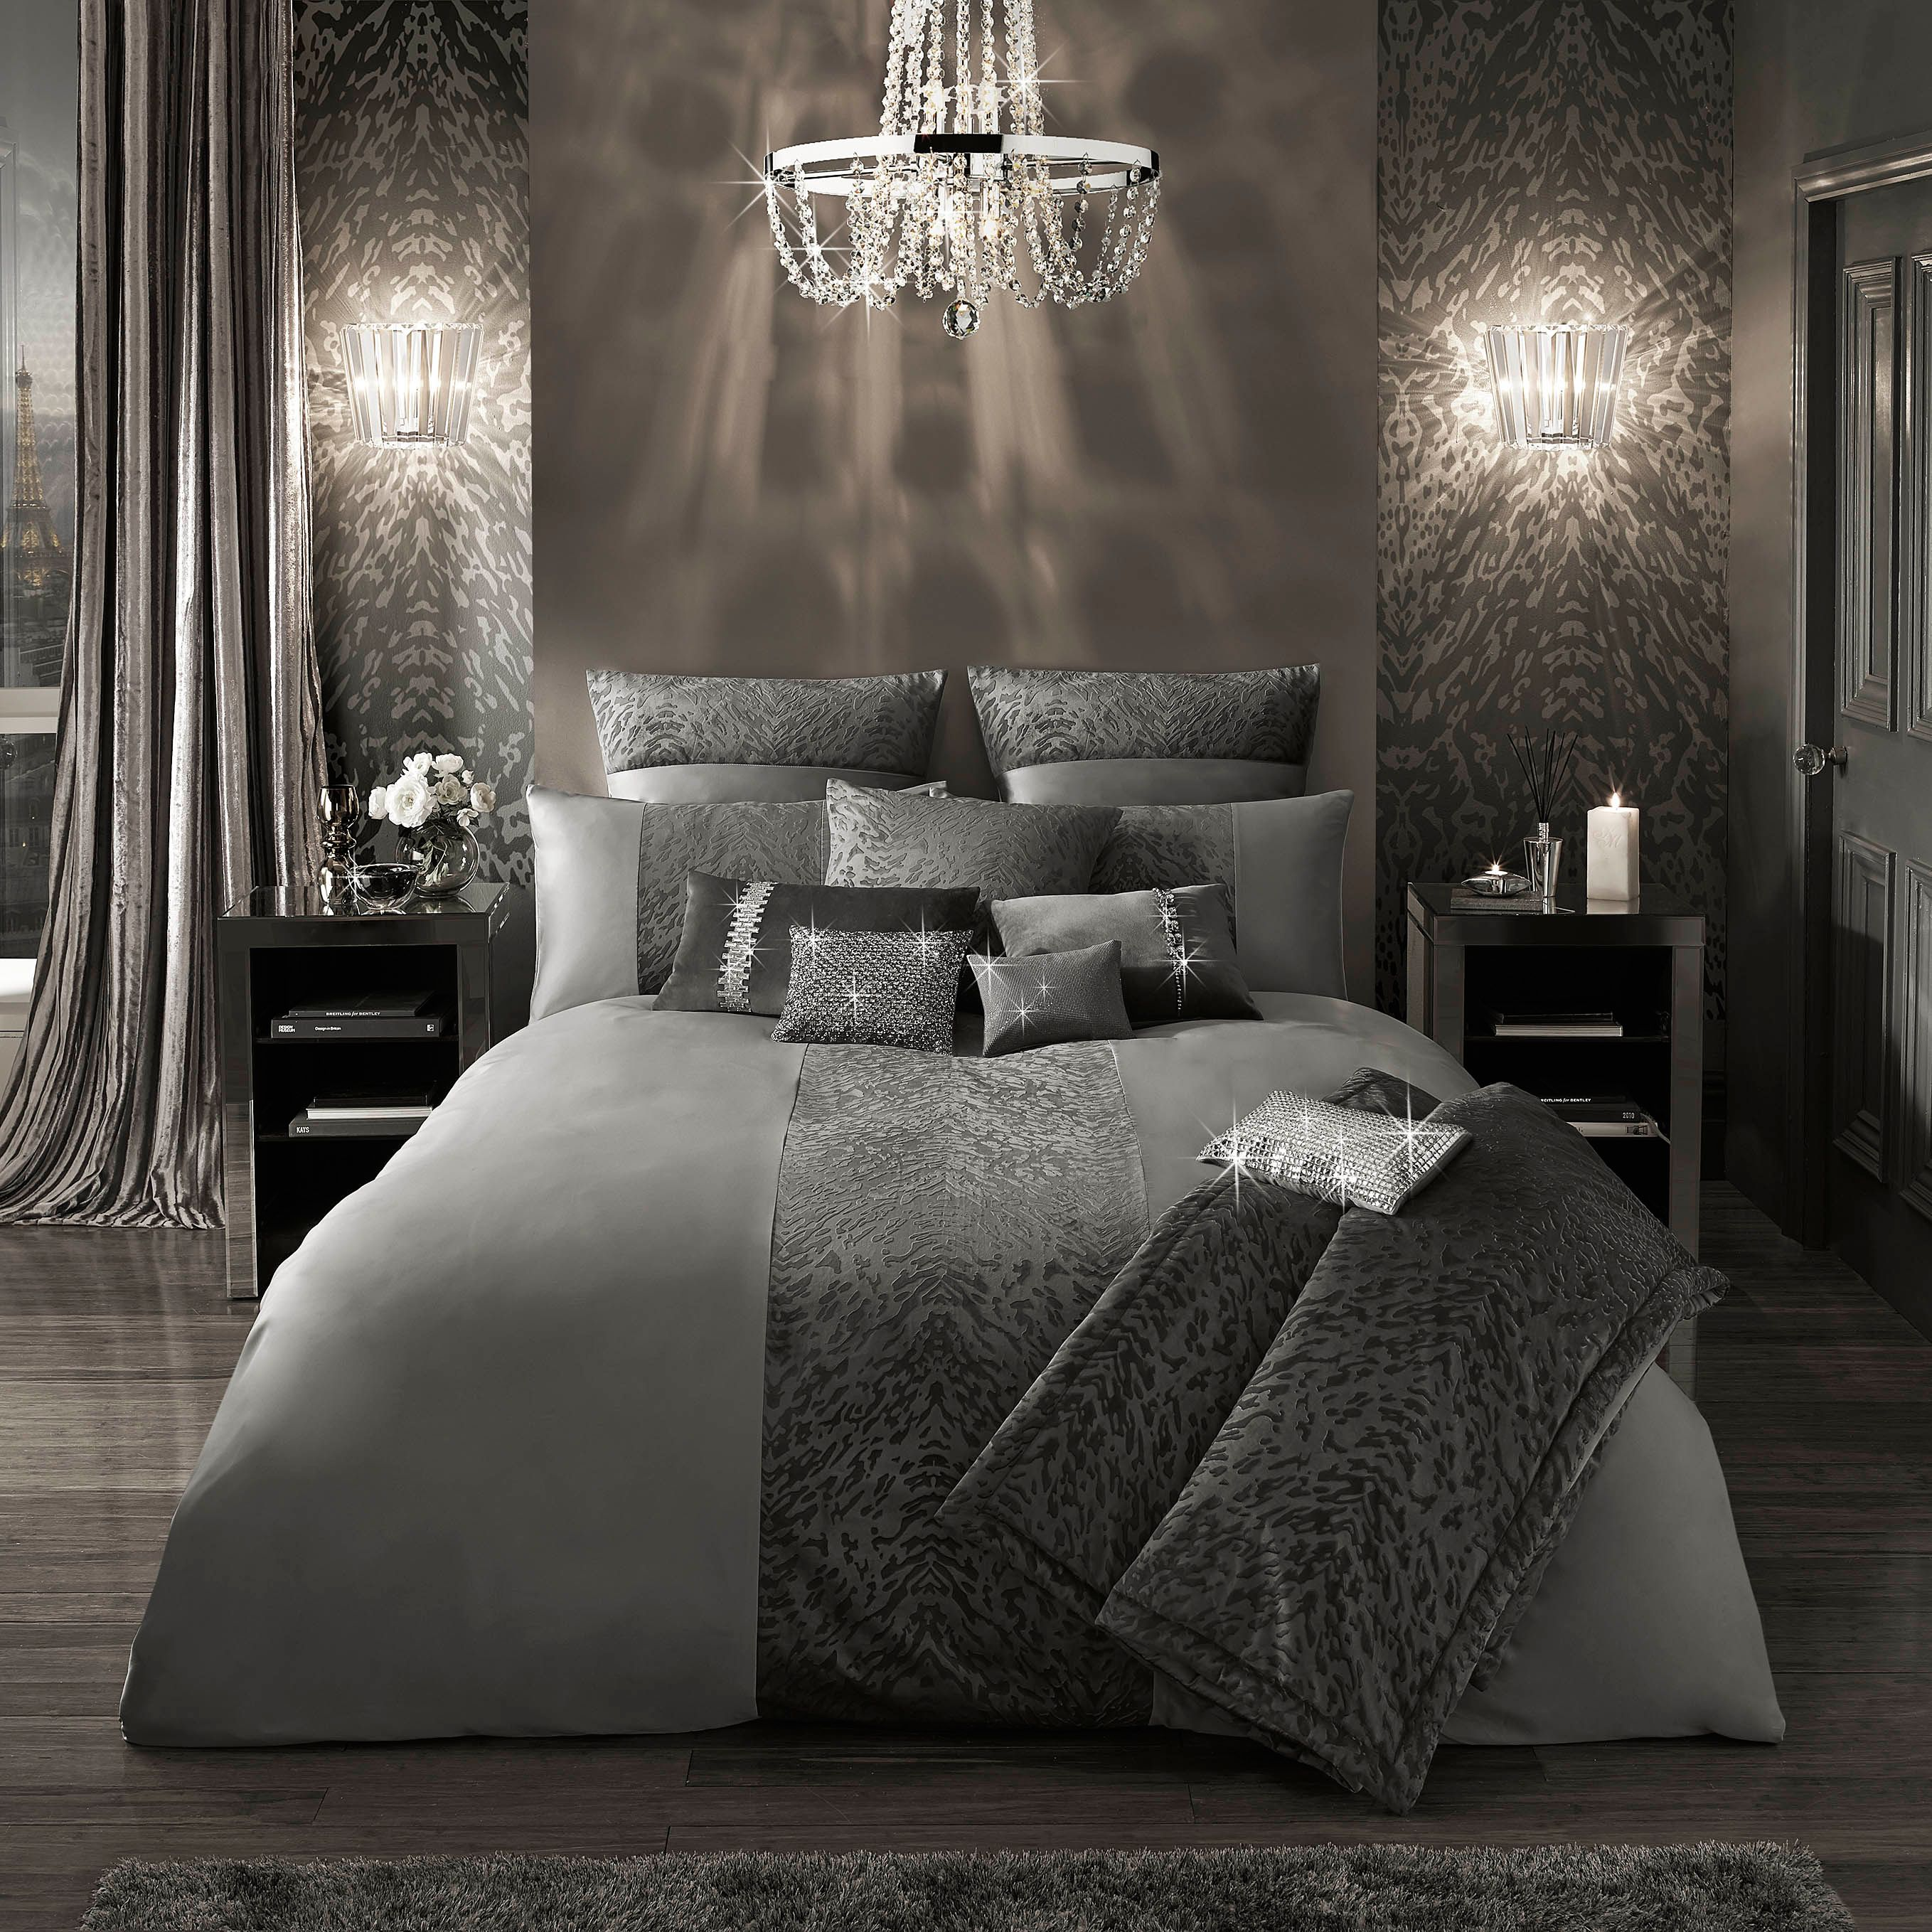 Kylie Minogue Duvet Covers Sale at House of Fraser : kylie quilt covers - Adamdwight.com